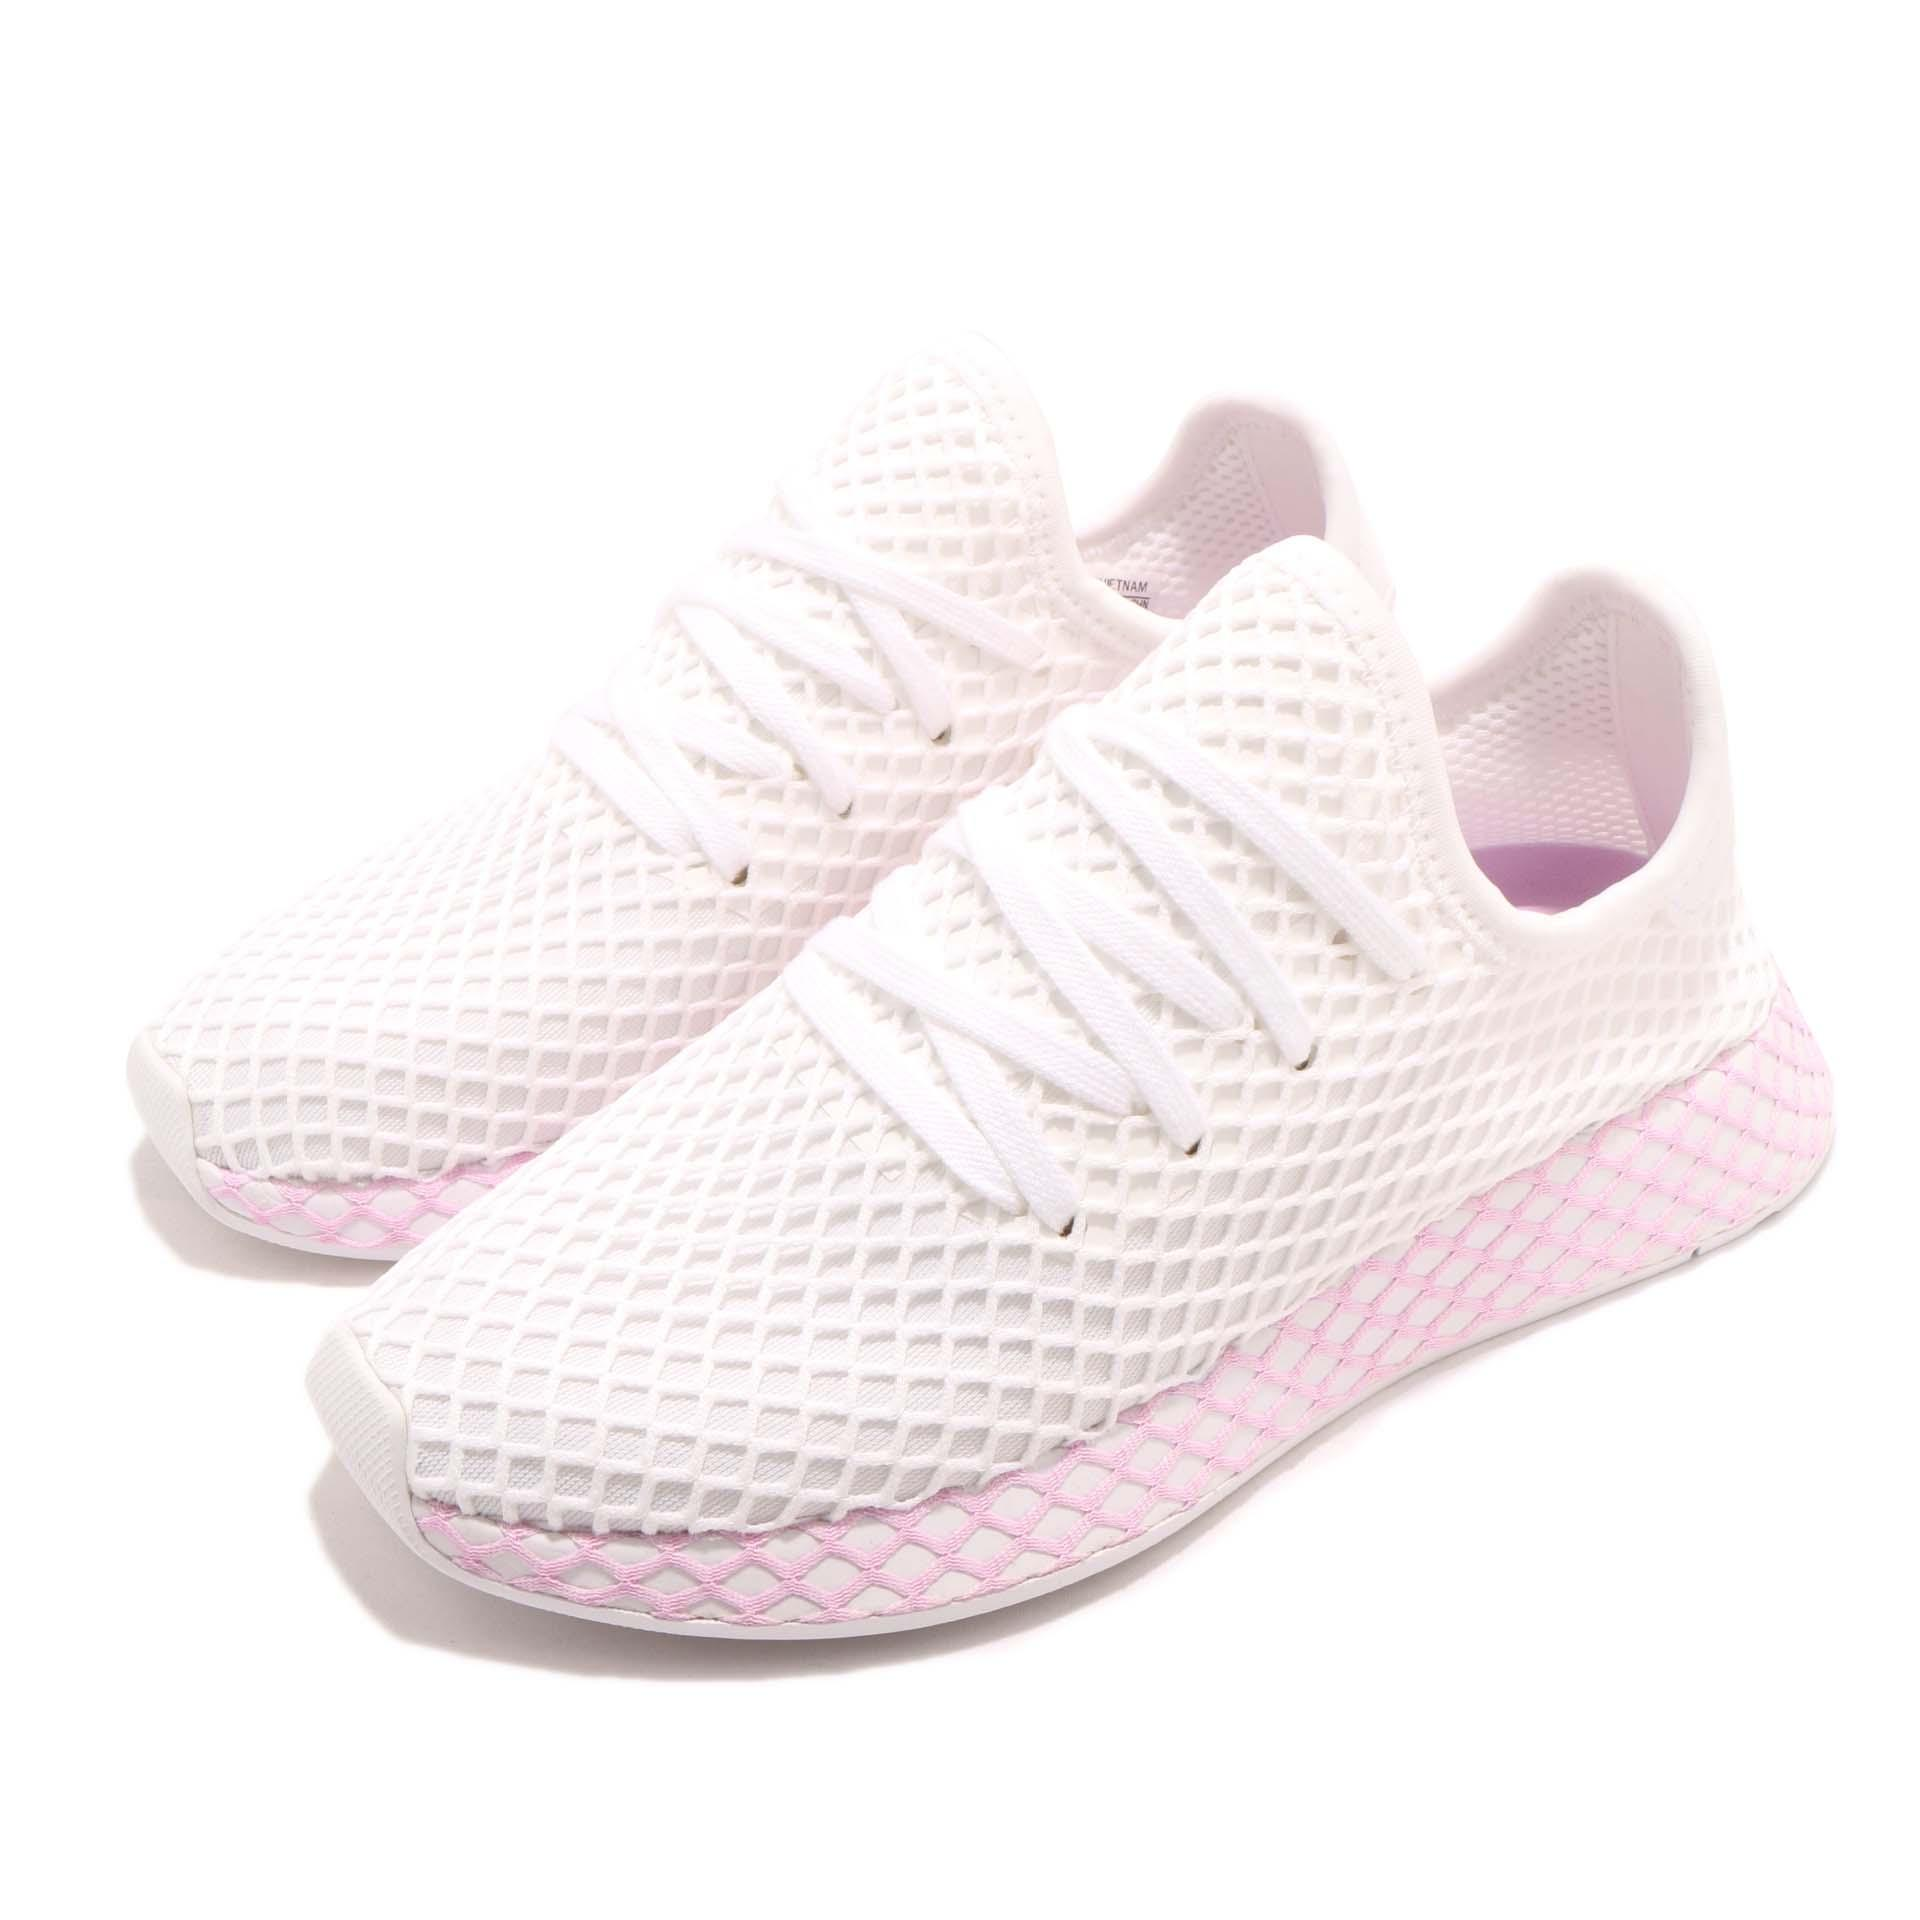 1ee28cc1f Details about adidas Originals Deerupt W Runner White Lilac Women Running  Shoes Sneaker B37601